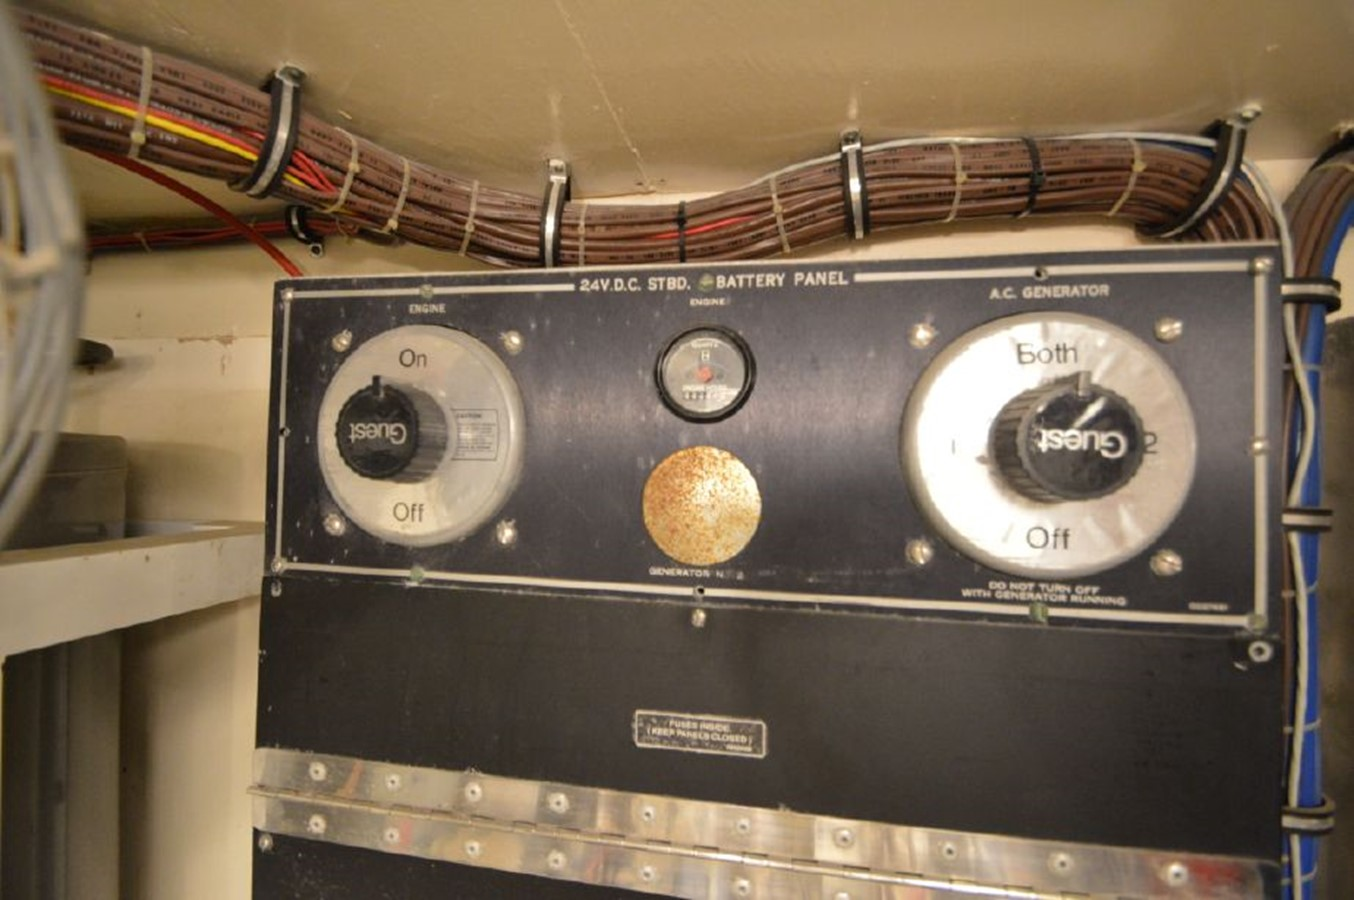 Stbd Engine Hours - 54 HATTERAS For Sale